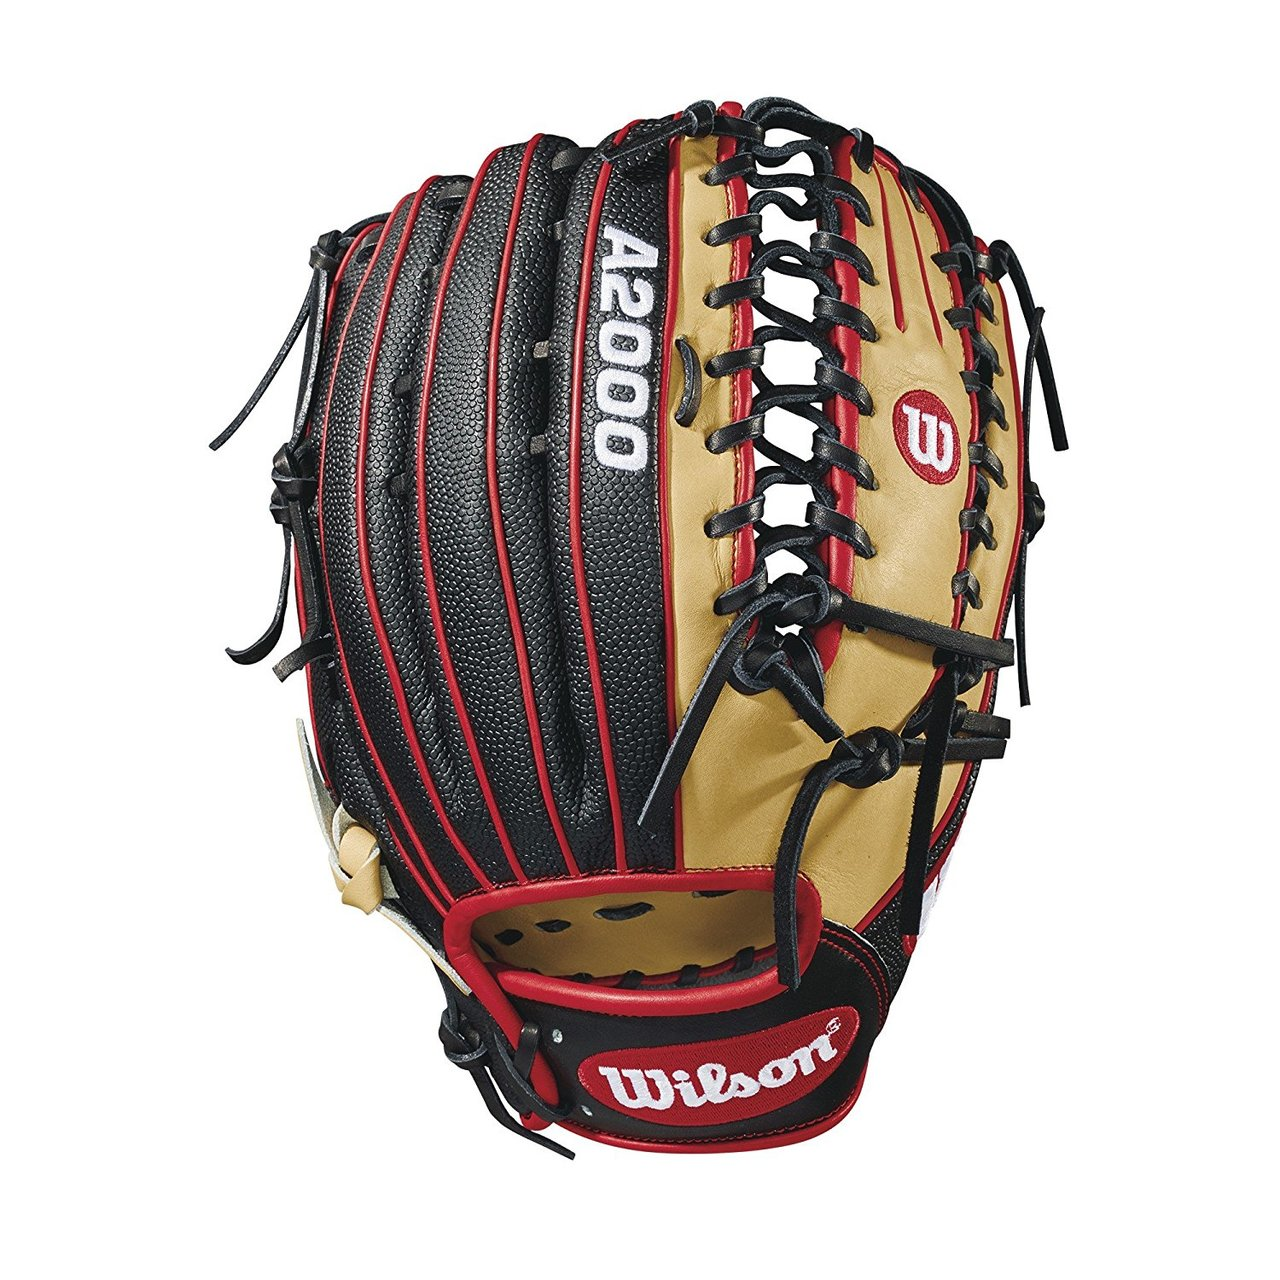 wilson-2018-a2000-ot6-ss-outfield-baseball-glove-right-hand-throw-12-75 WTA20RB18OT6SS-RightHandThrow Wilson 887768614638 12.75 outfield model 6 finger trap web Black SuperSkin -- twice